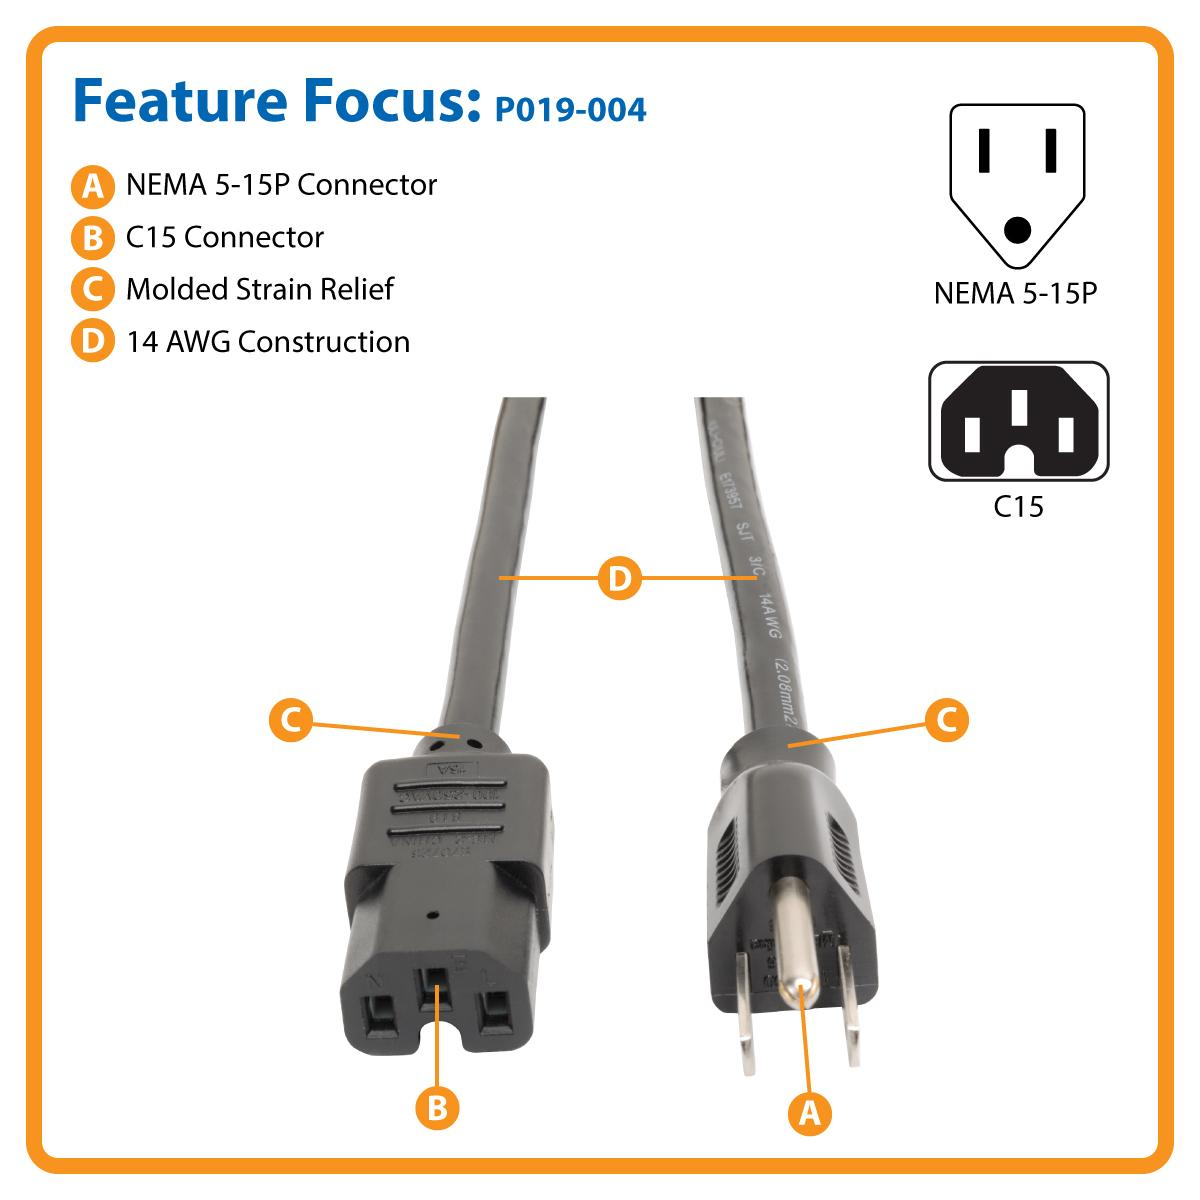 Tripp Lite Heavy Duty Power Cord 15a14awg Nema 5 15p Iec320 C14 Wiring Plug C13 Connector C15 Computer Socket View Larger